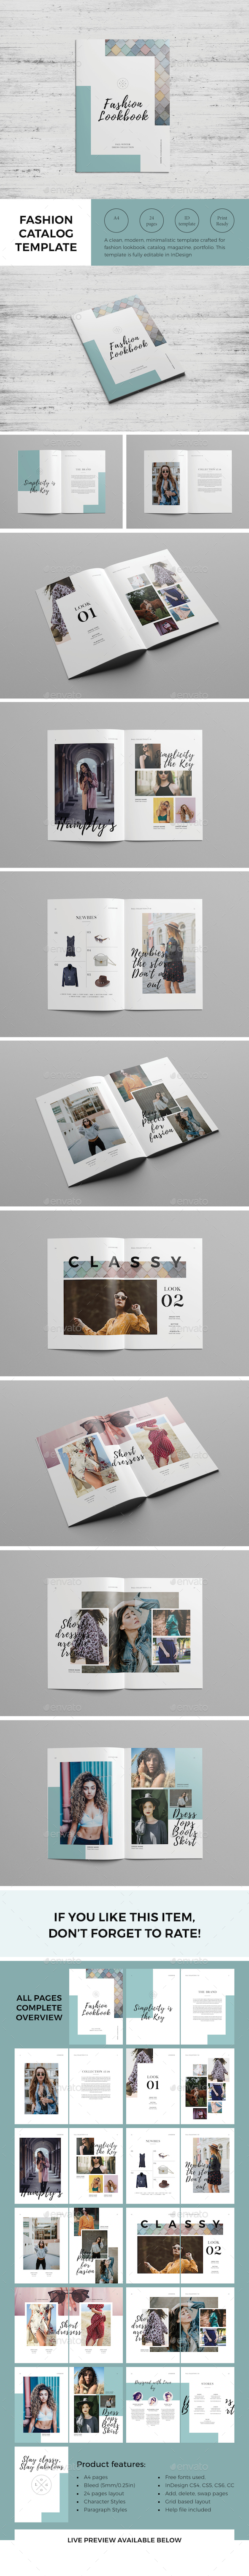 GraphicRiver Fashion Catalog Lookbook Template 21004851